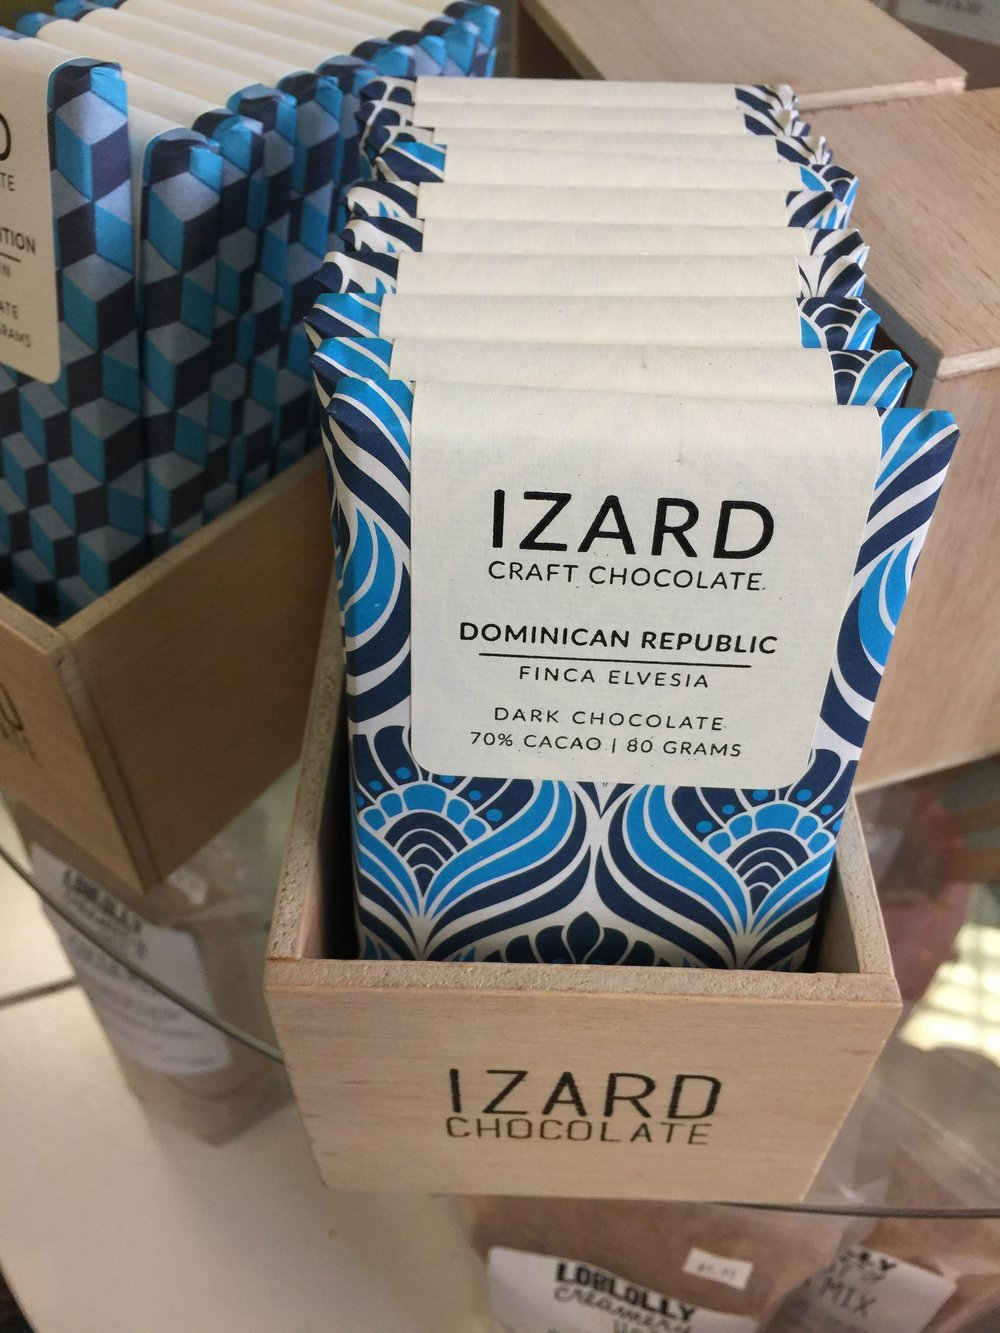 Izard Chocolate flies off the shelf at Sweet Candy + Gifts in the Heights. Stop in for a bar today!